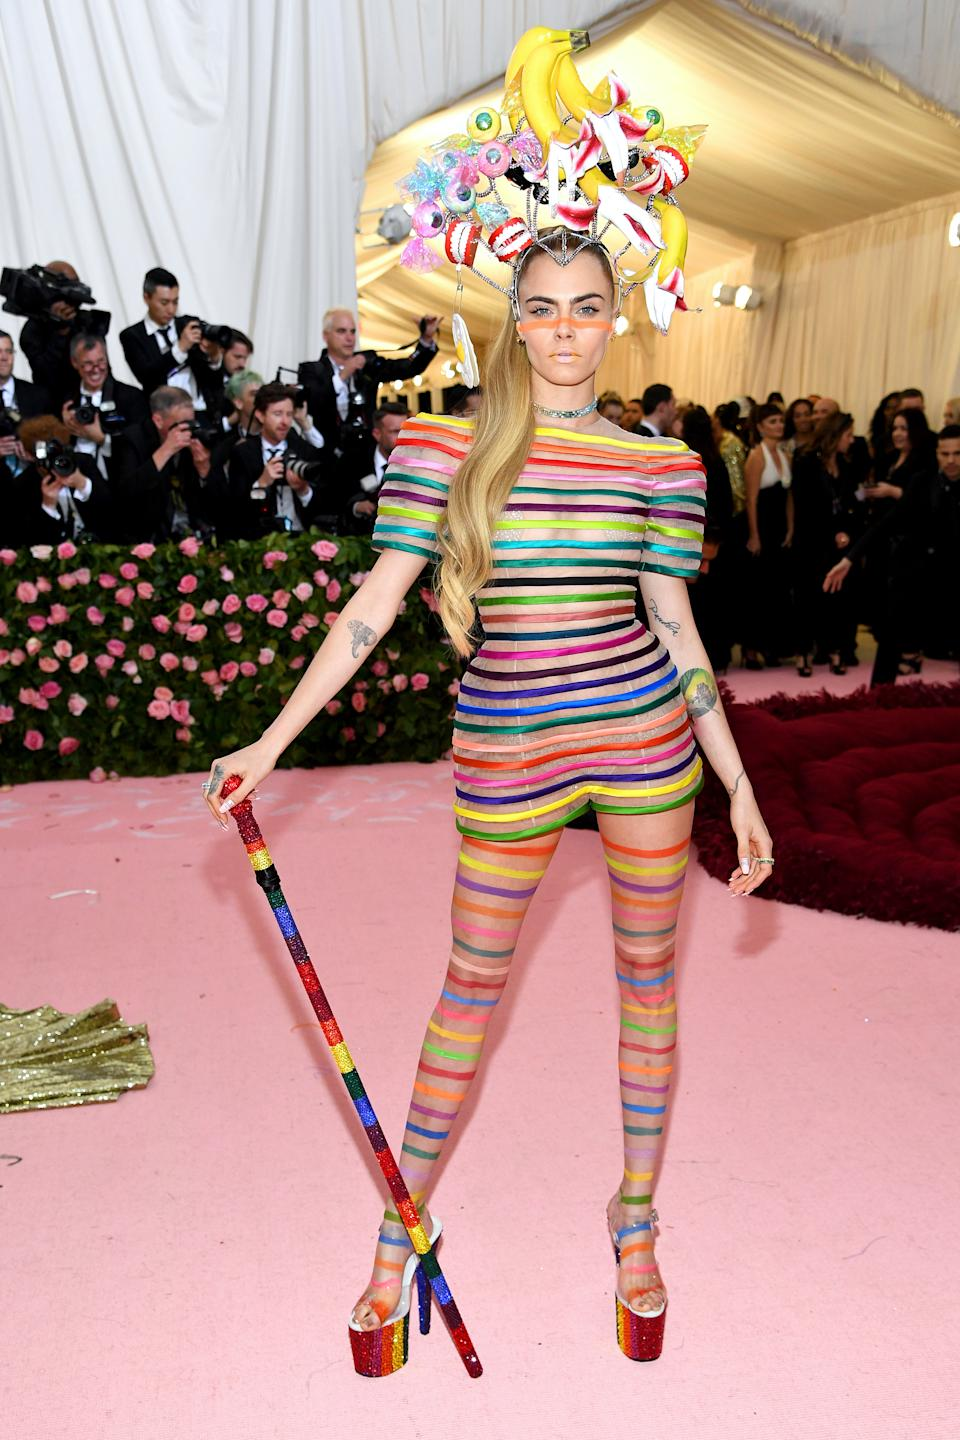 Model and actress Cara Delevingne attended the Met Gala in a striped playsuit, complete with a headpiece featuring both fake teeth and bananas. Photo: Getty Images